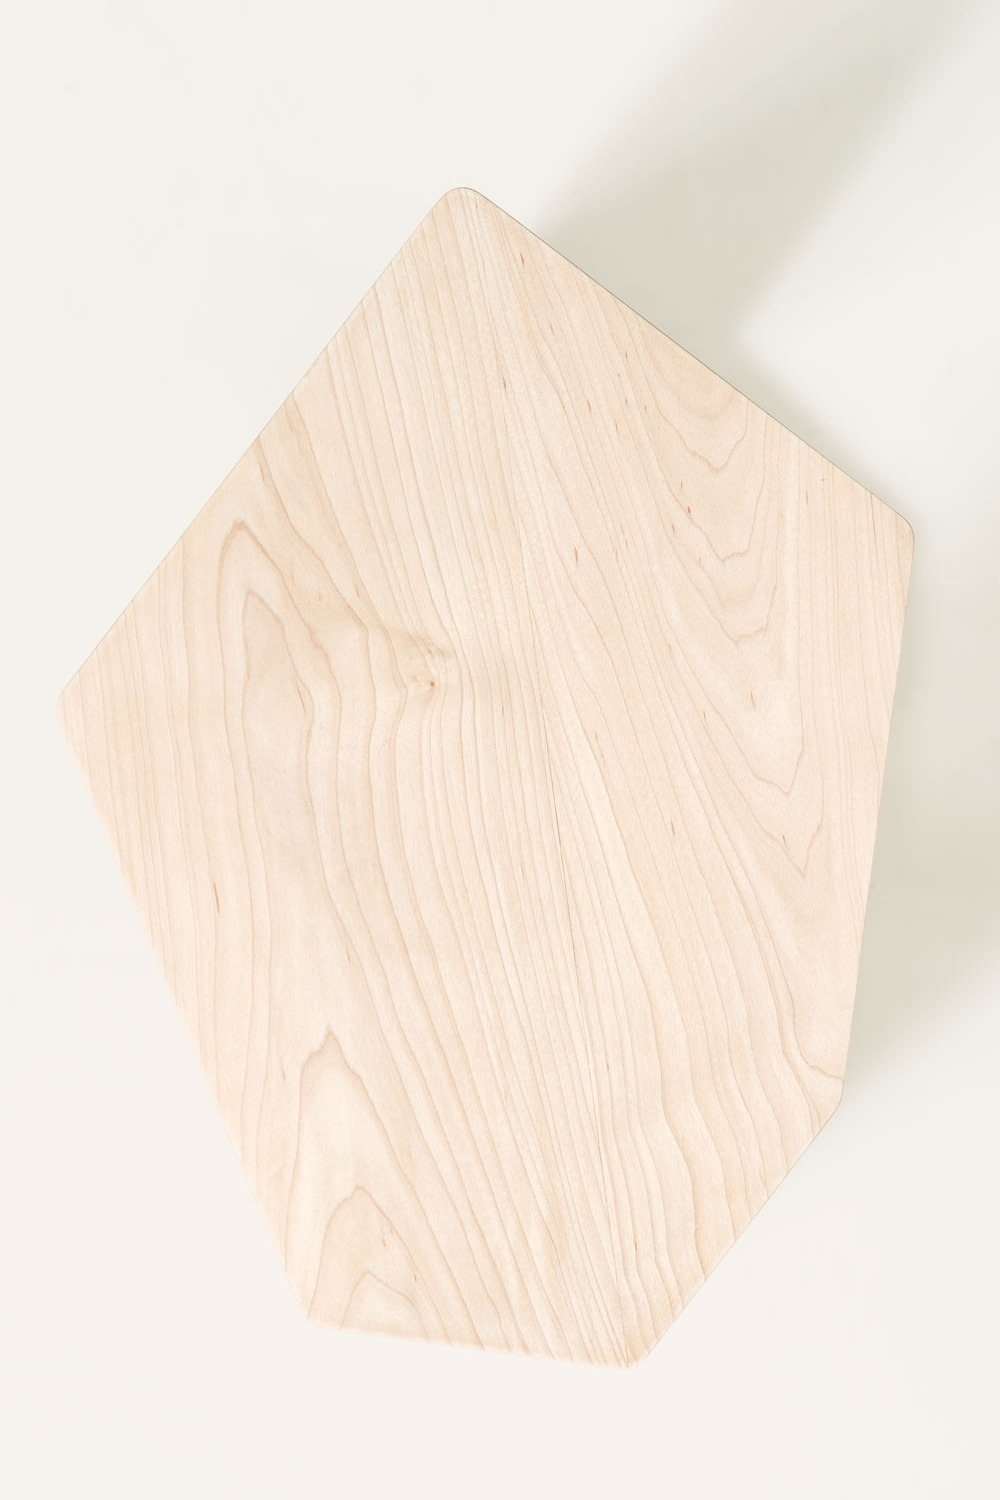 art-and-guile_atn-sidetable_natural-maple-top_1_2018.jpg